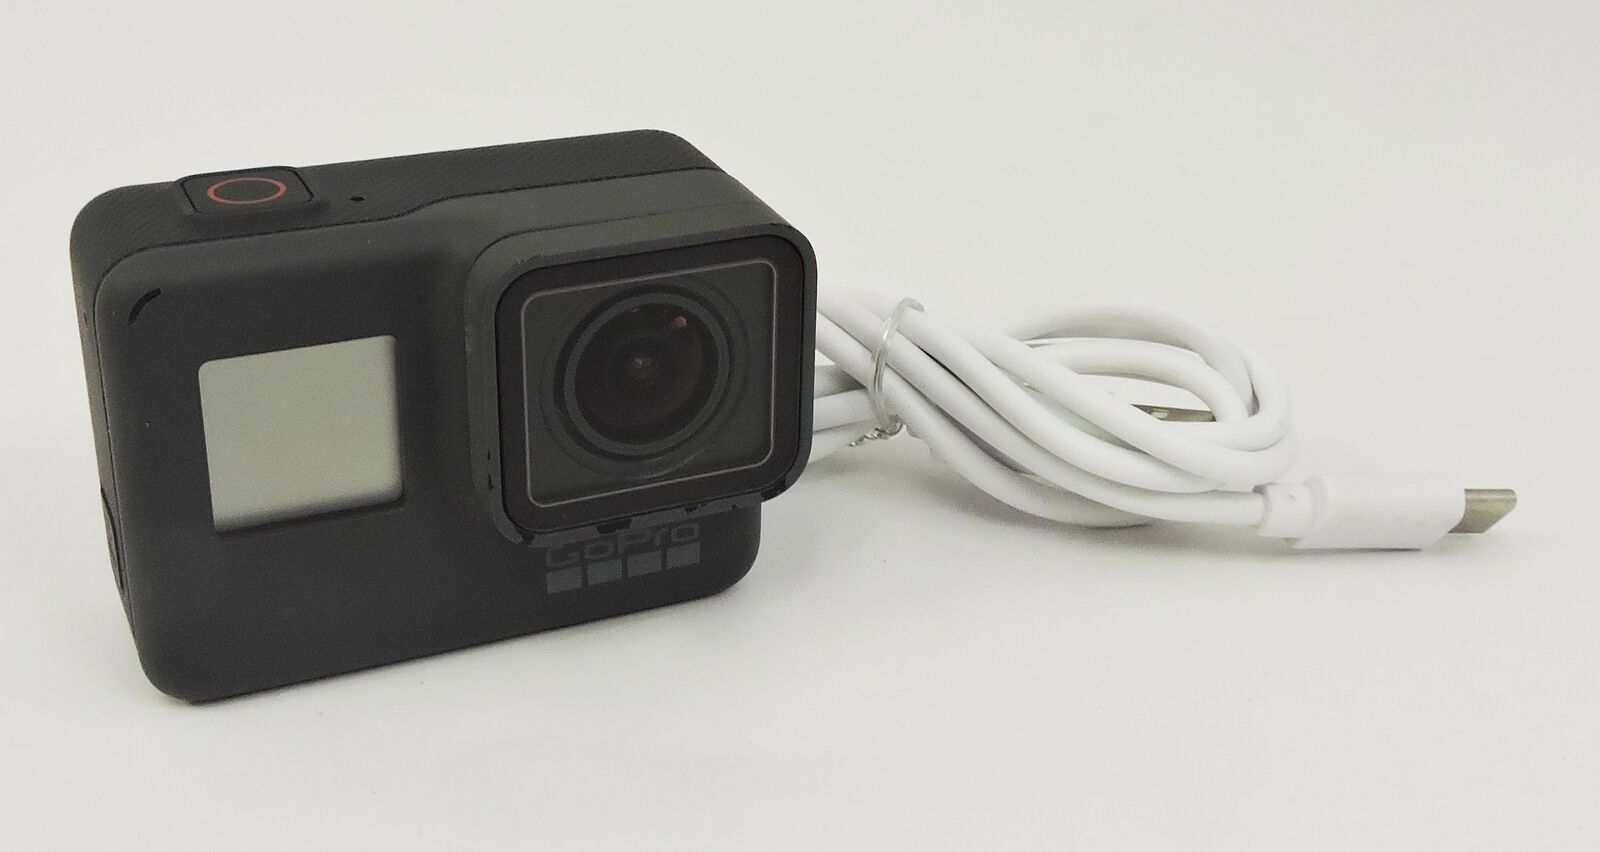 GoPro Hero 5 4K Action Black Edition Action Camera CHDHX-501 Featured